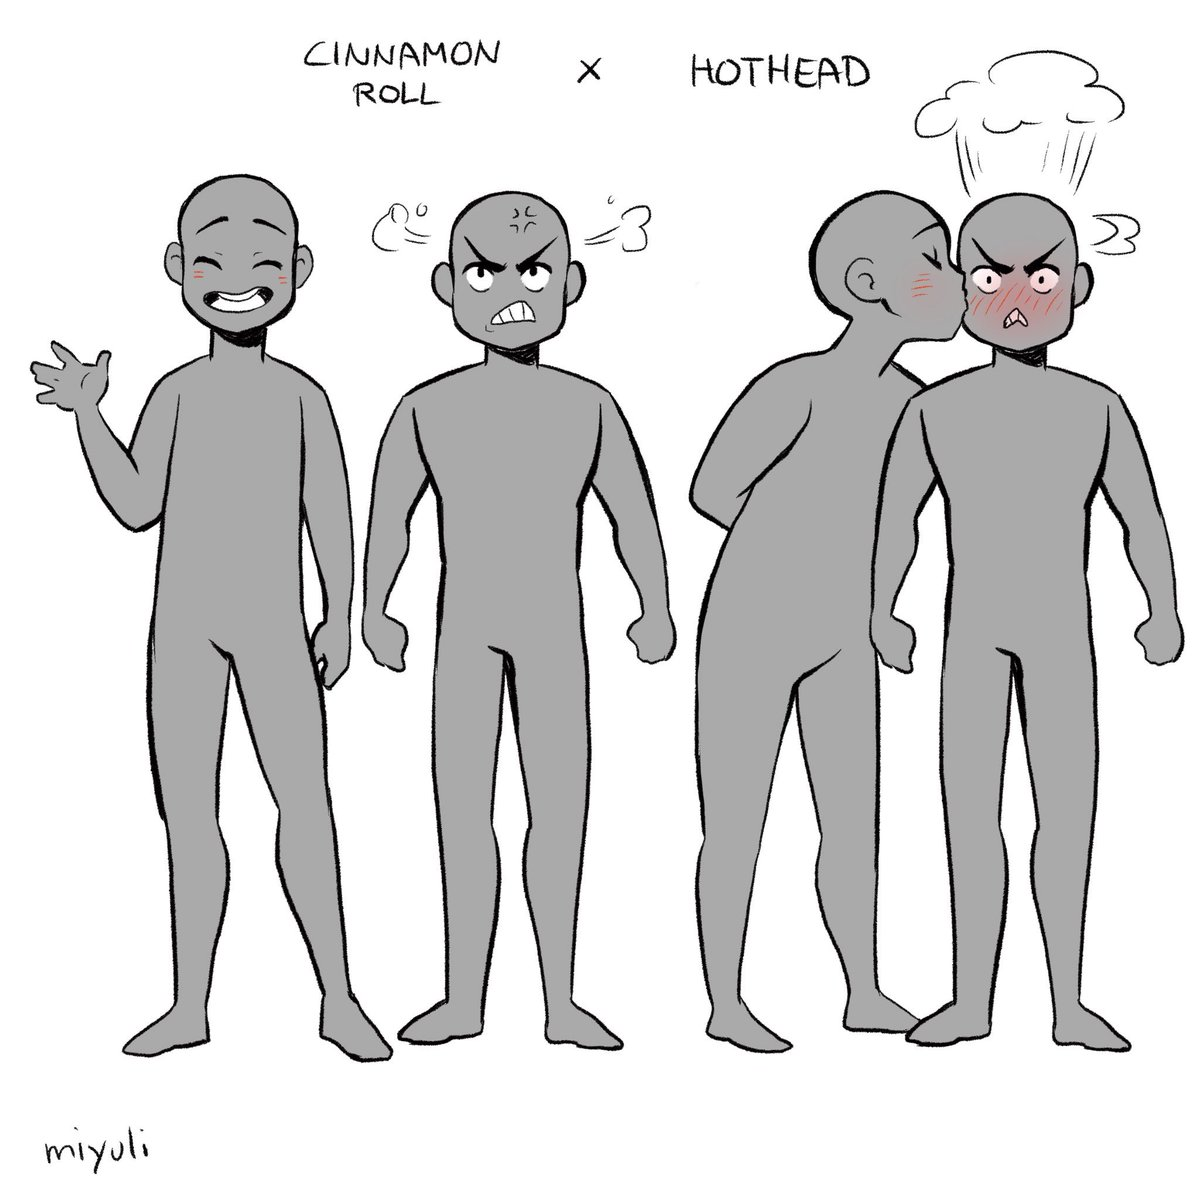 People were sharing their favourite ship dynamics so I tried drawing mine.